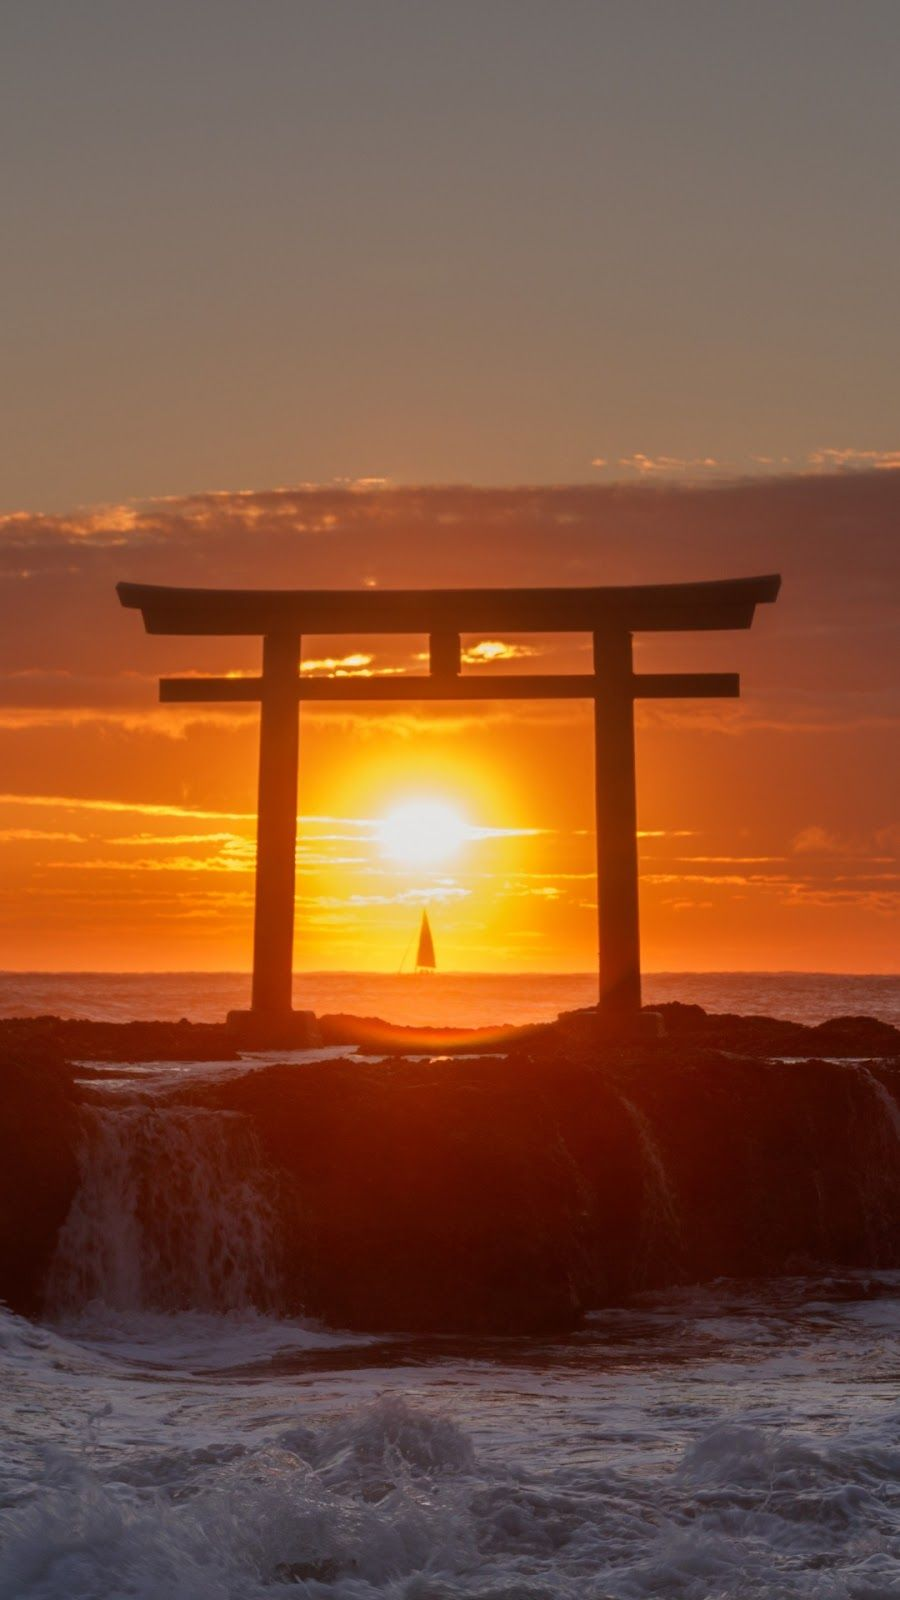 Japan Sunset Wallpapers Top Free Japan Sunset Backgrounds Wallpaperaccess